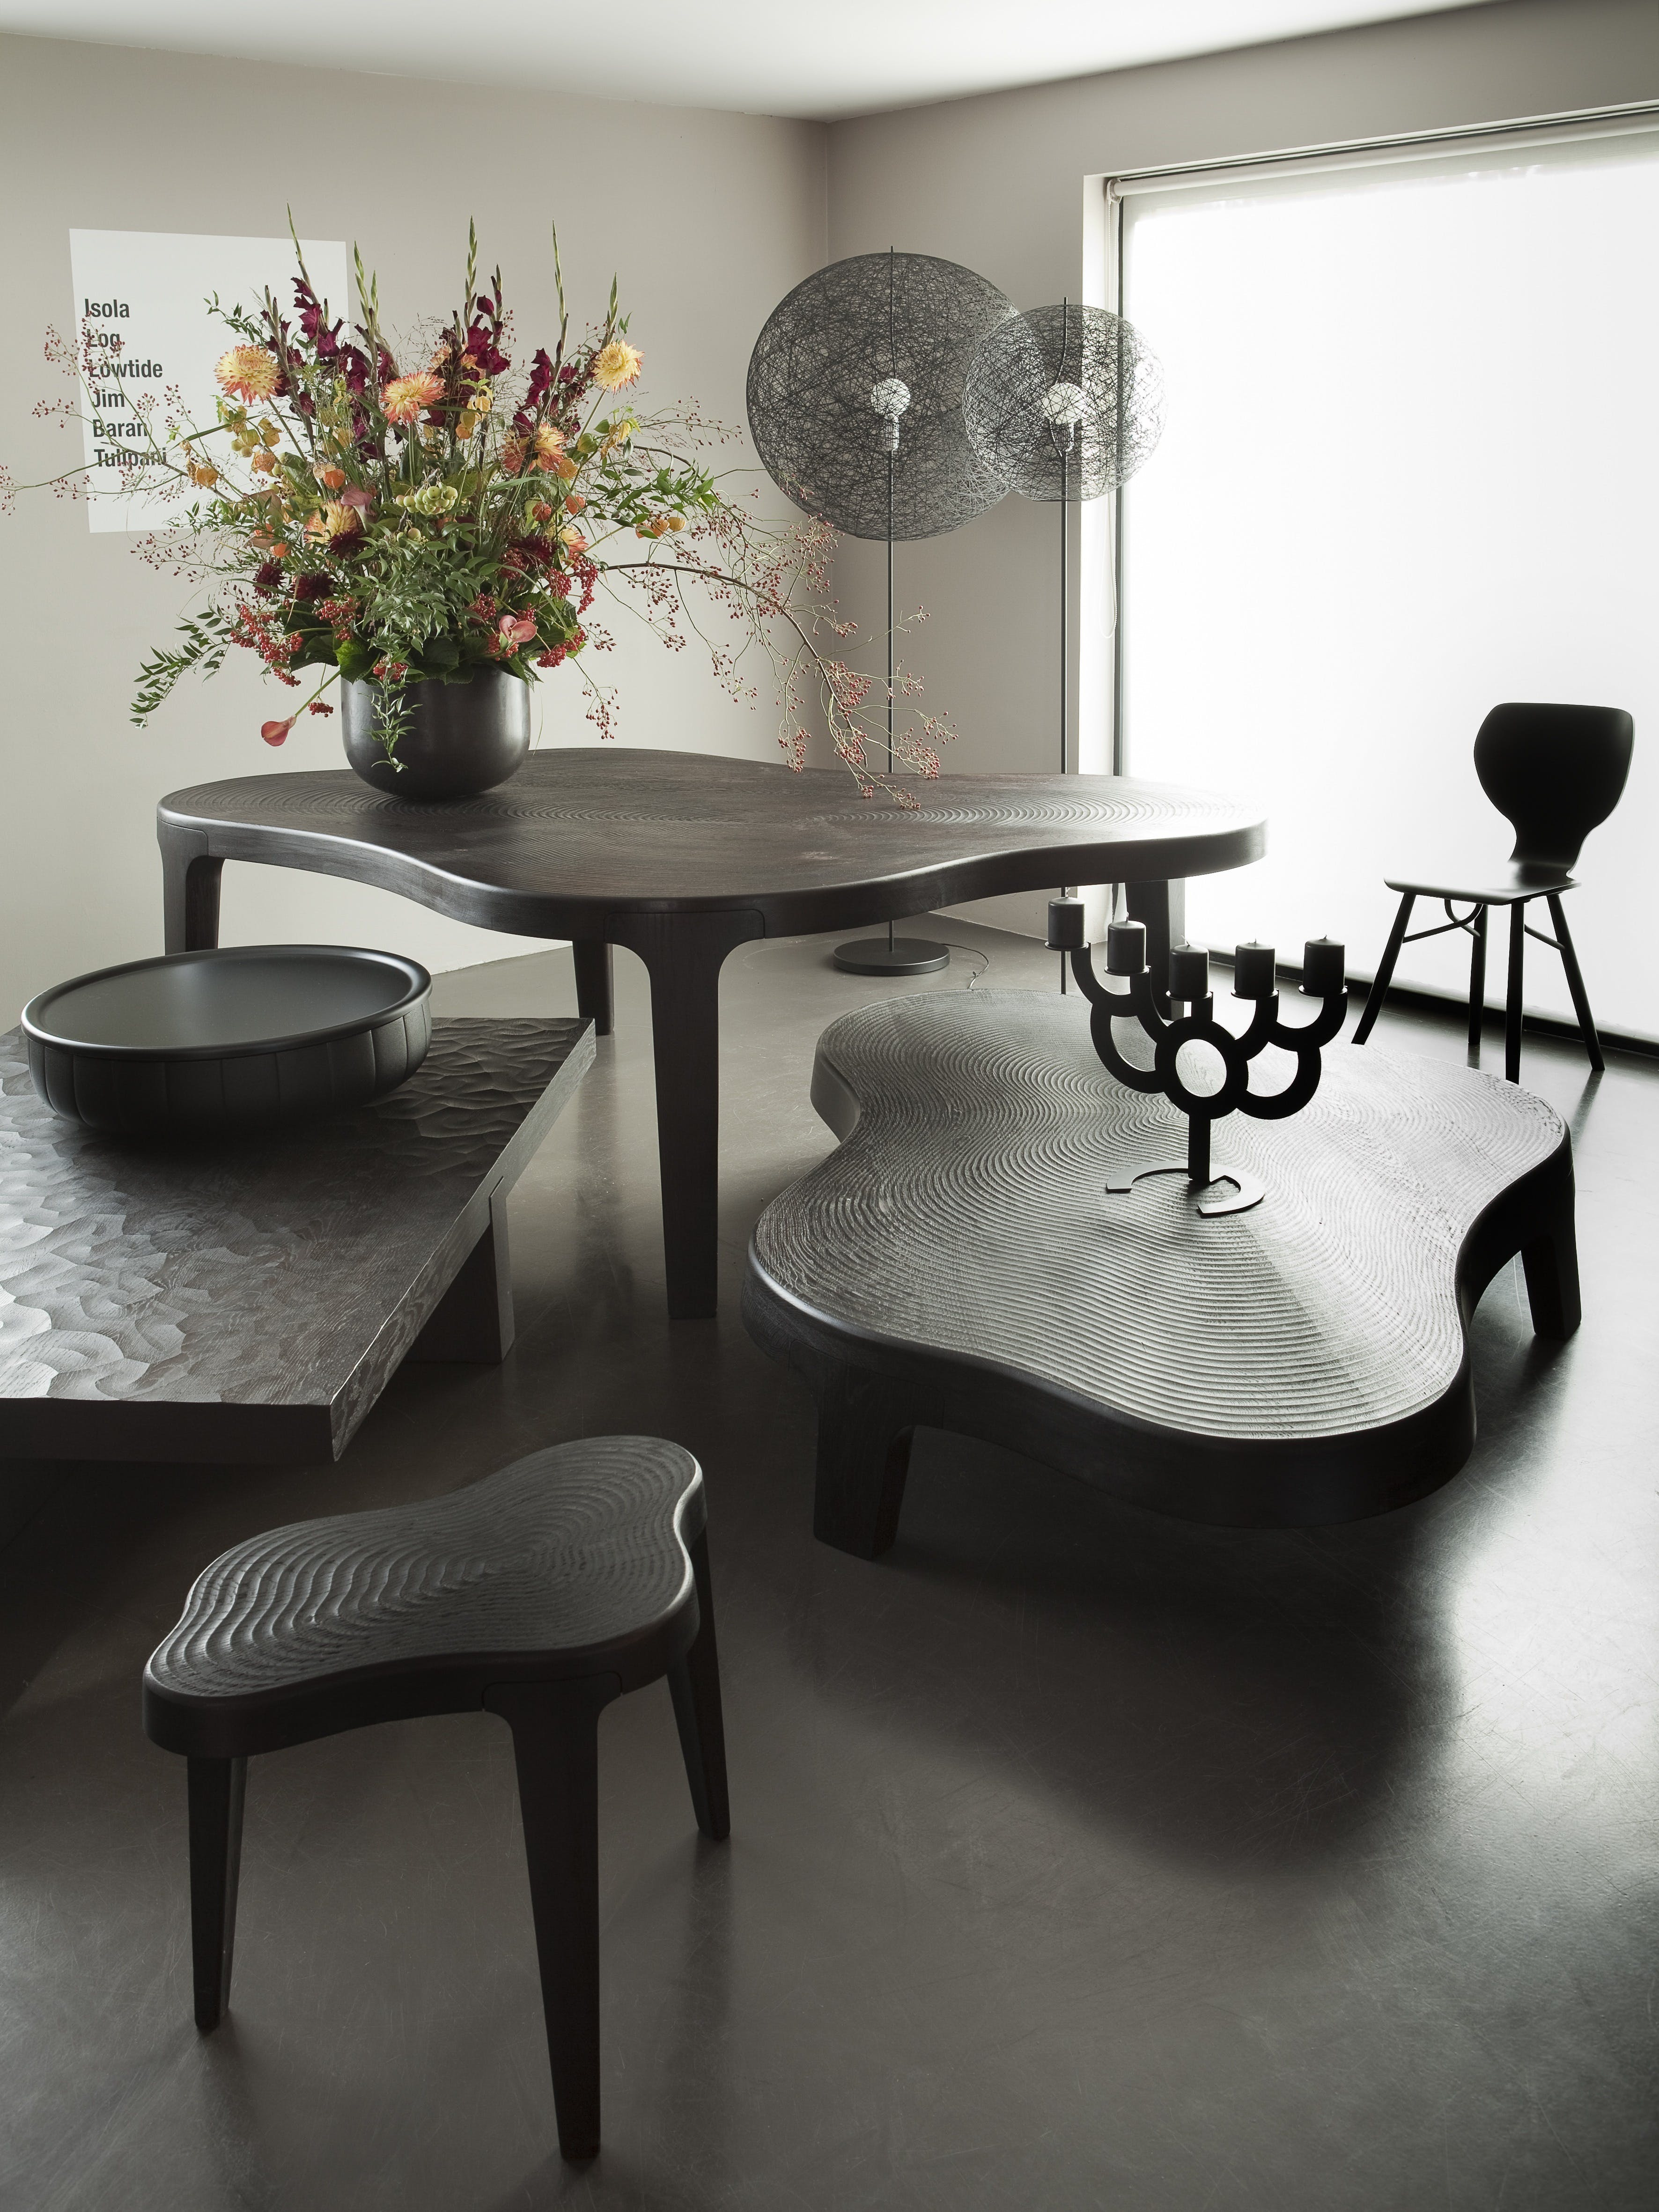 Isola Coffeetable Ambient 3